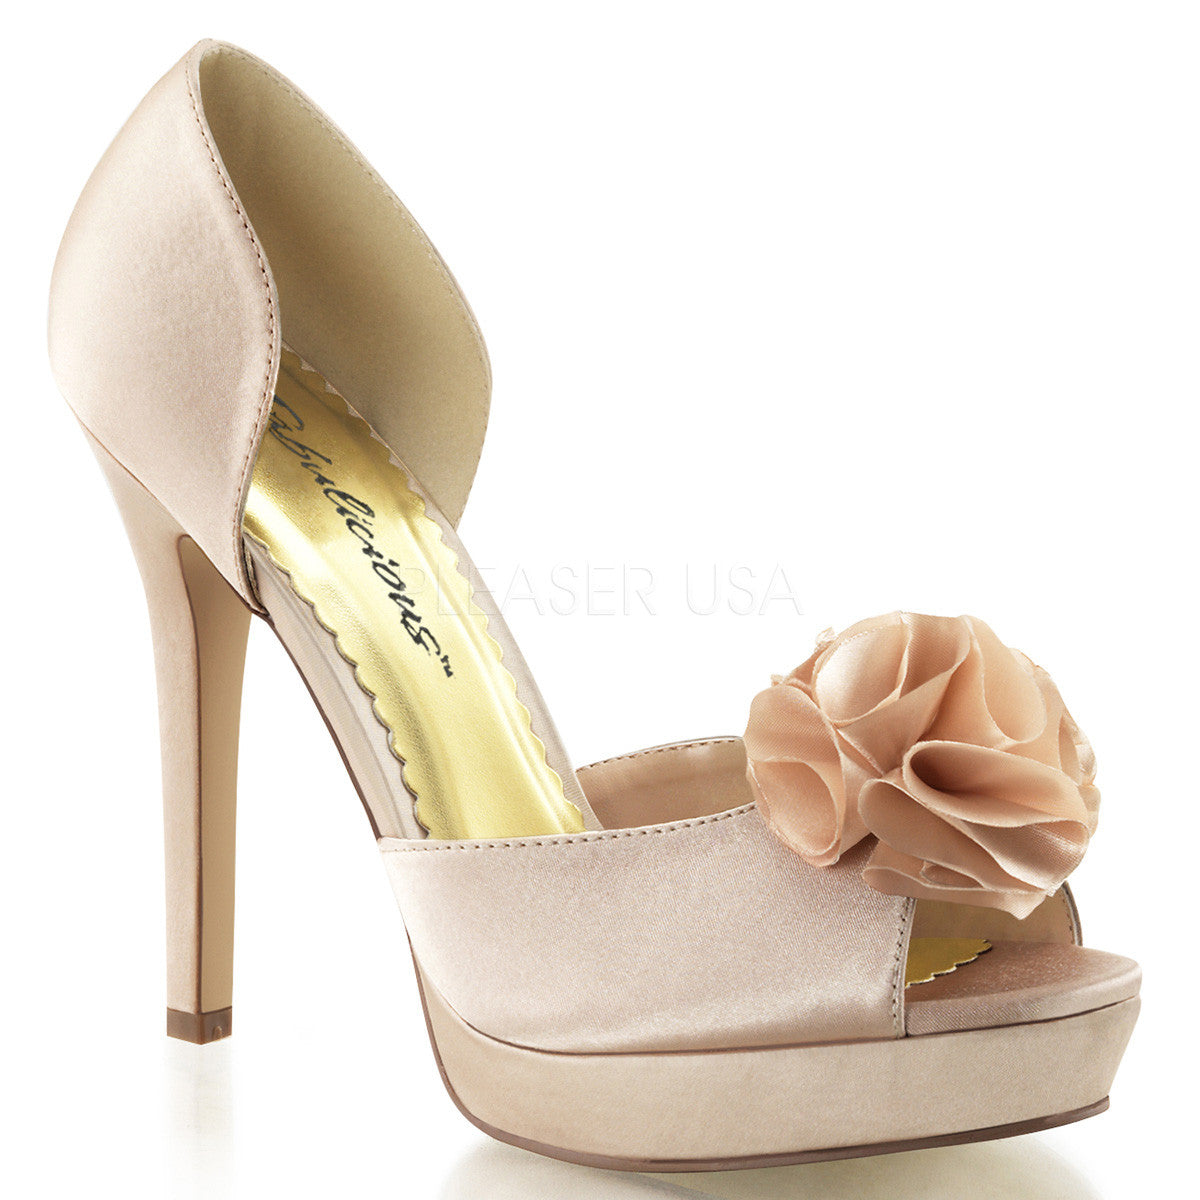 FABULICIOUS LUMINA-34 Champagne Satin Peep Toe Pumps - Shoecup.com